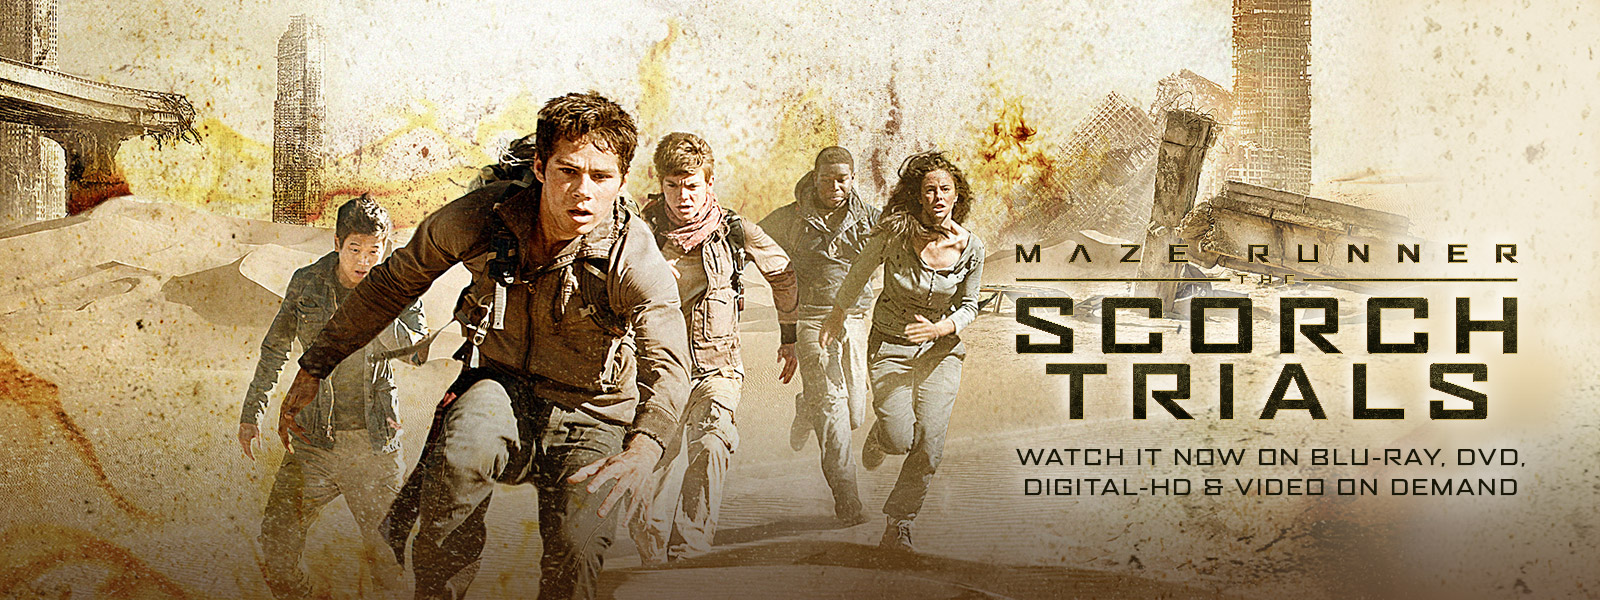 Maze Runner: The Scorch Trials - Watch it now on Blu-ray, DVD, Digital HD & Video on Demand